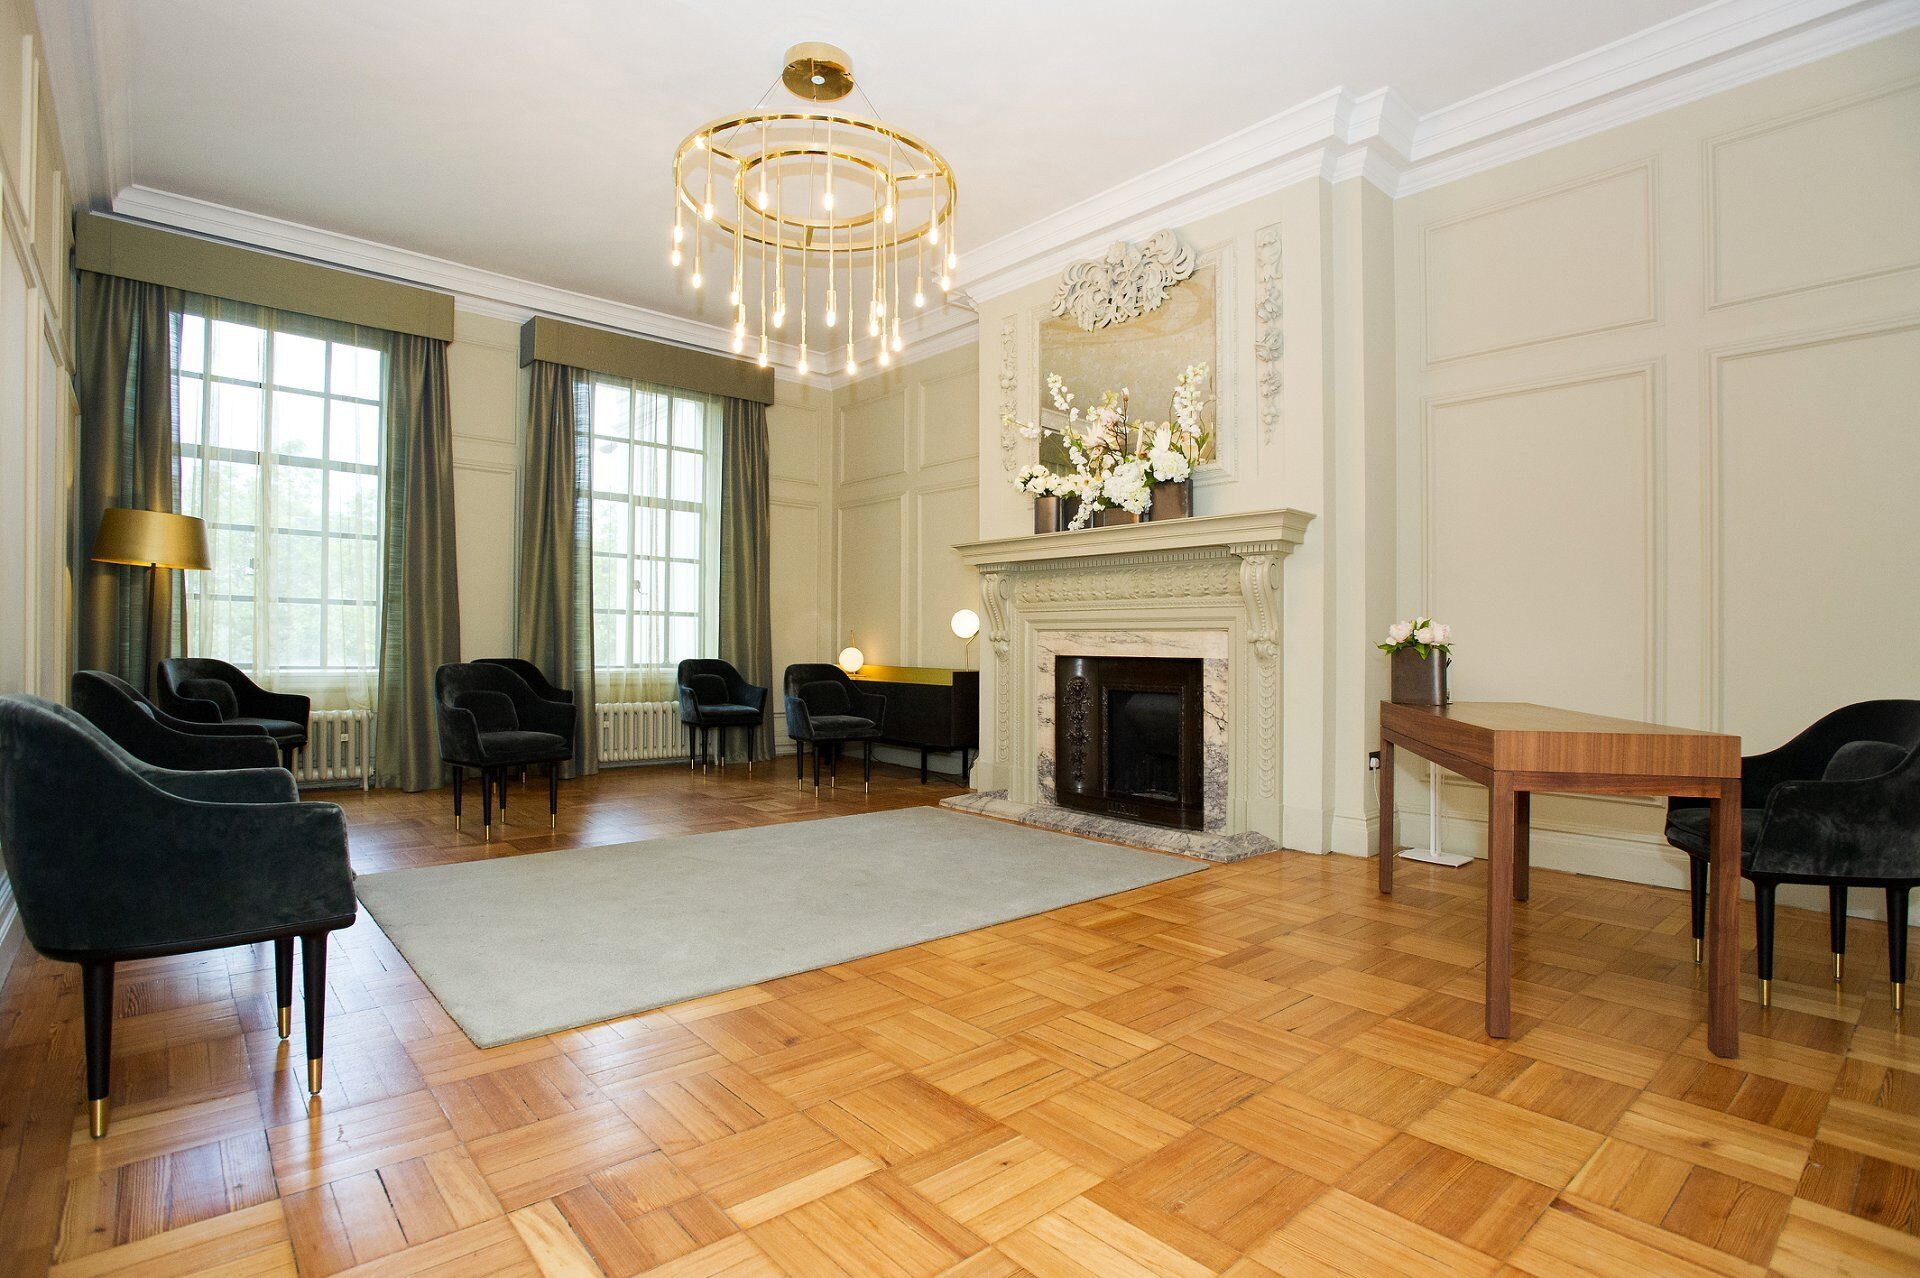 old marylebone town hall new ceremony room layouts the pimlico room seen from the door showing seating for 7 guests with couple in front of fireplace and the registrar near the door